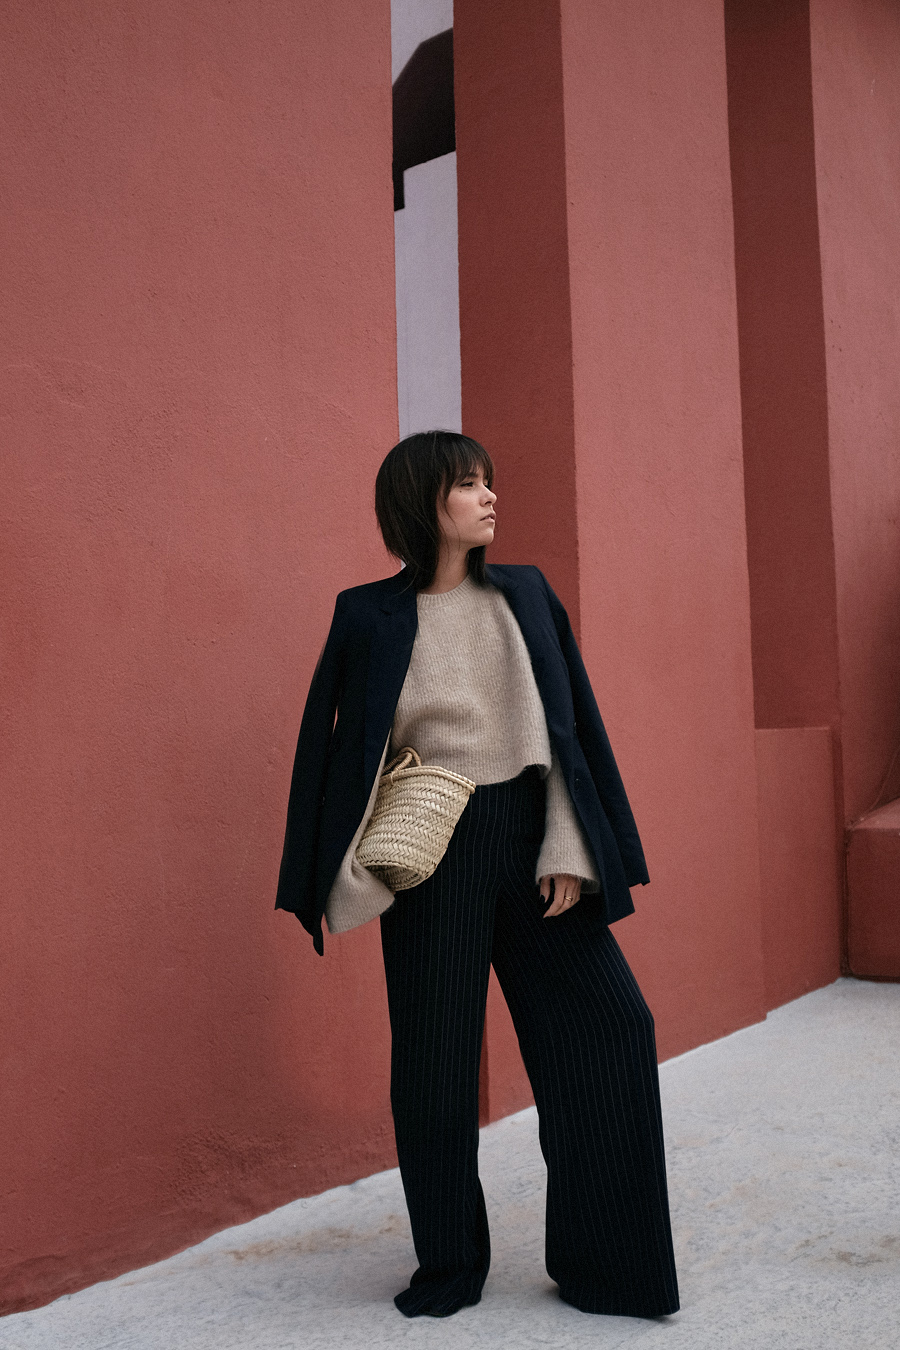 Outfit: Suit up. Blazer, Pin-striped trousers, Bellsleeves Sweater, Straw bag